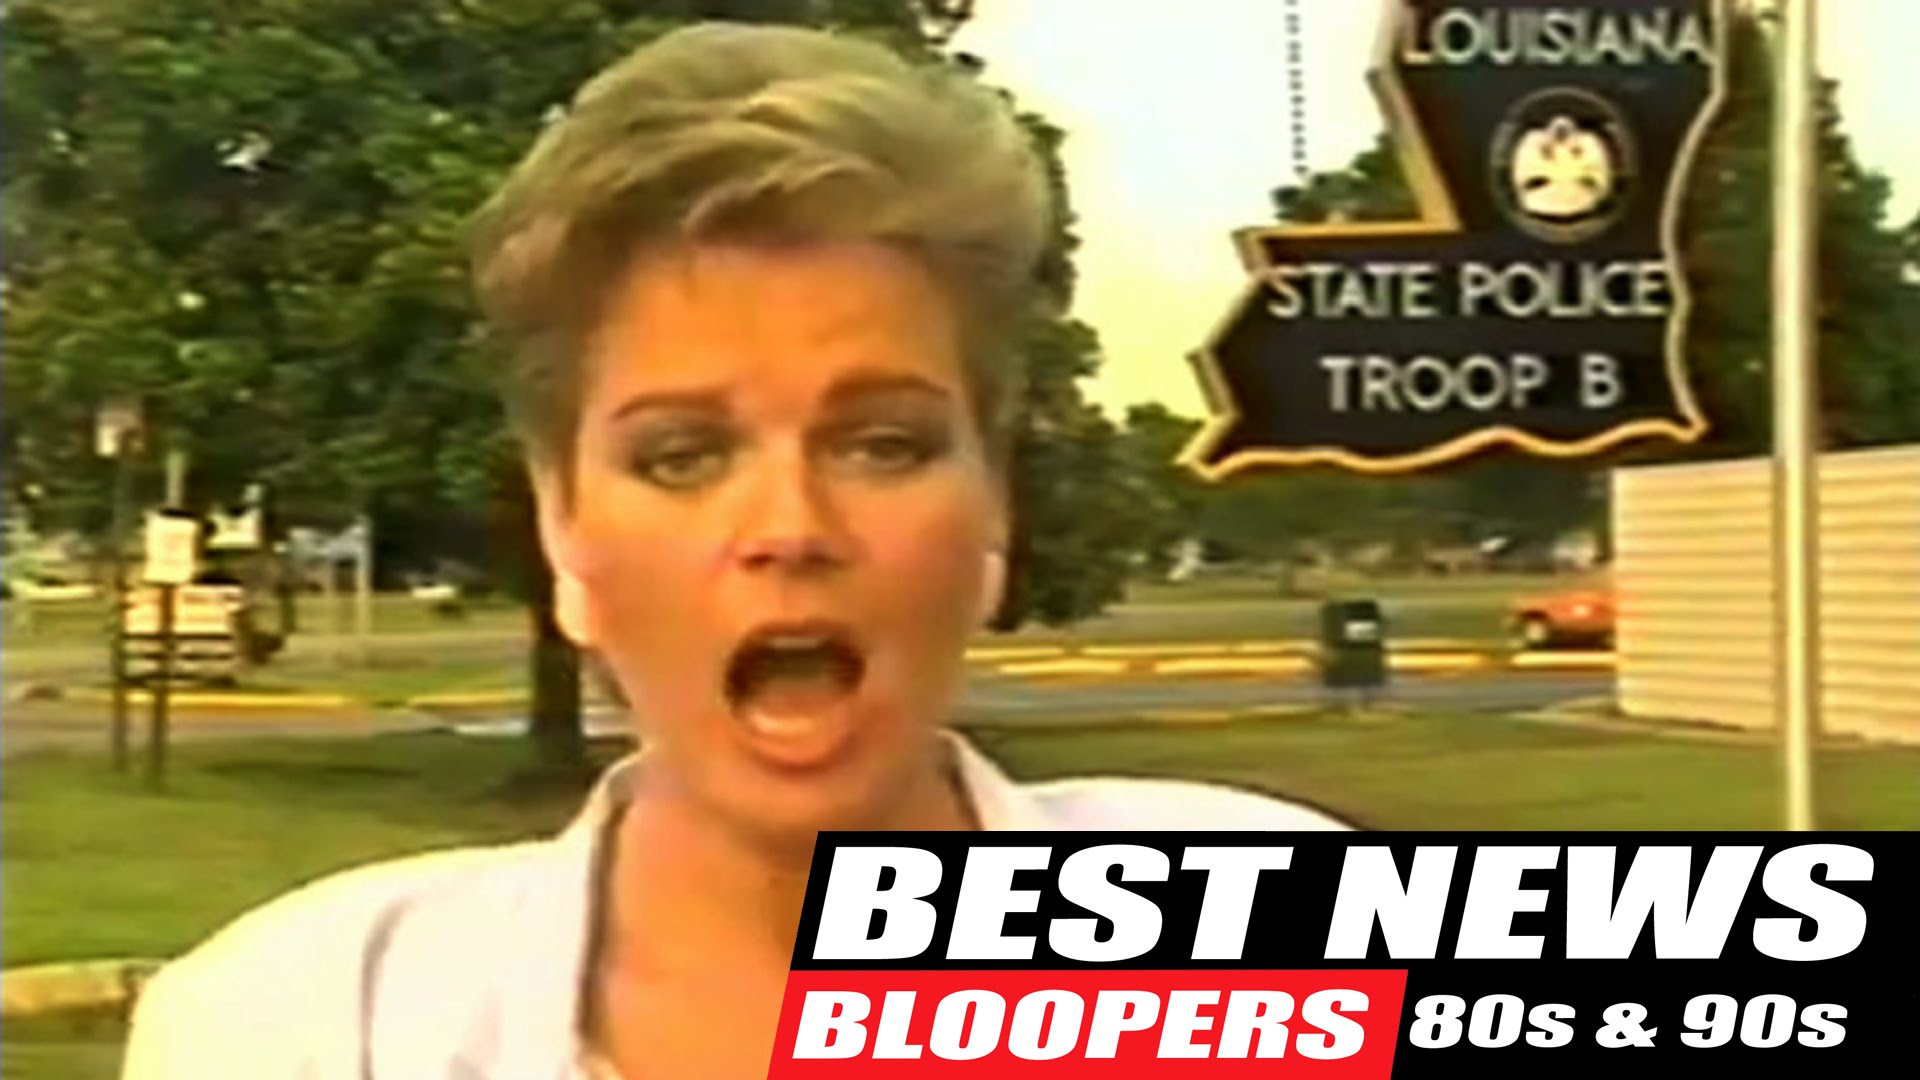 News Bloopers 80s and 90s